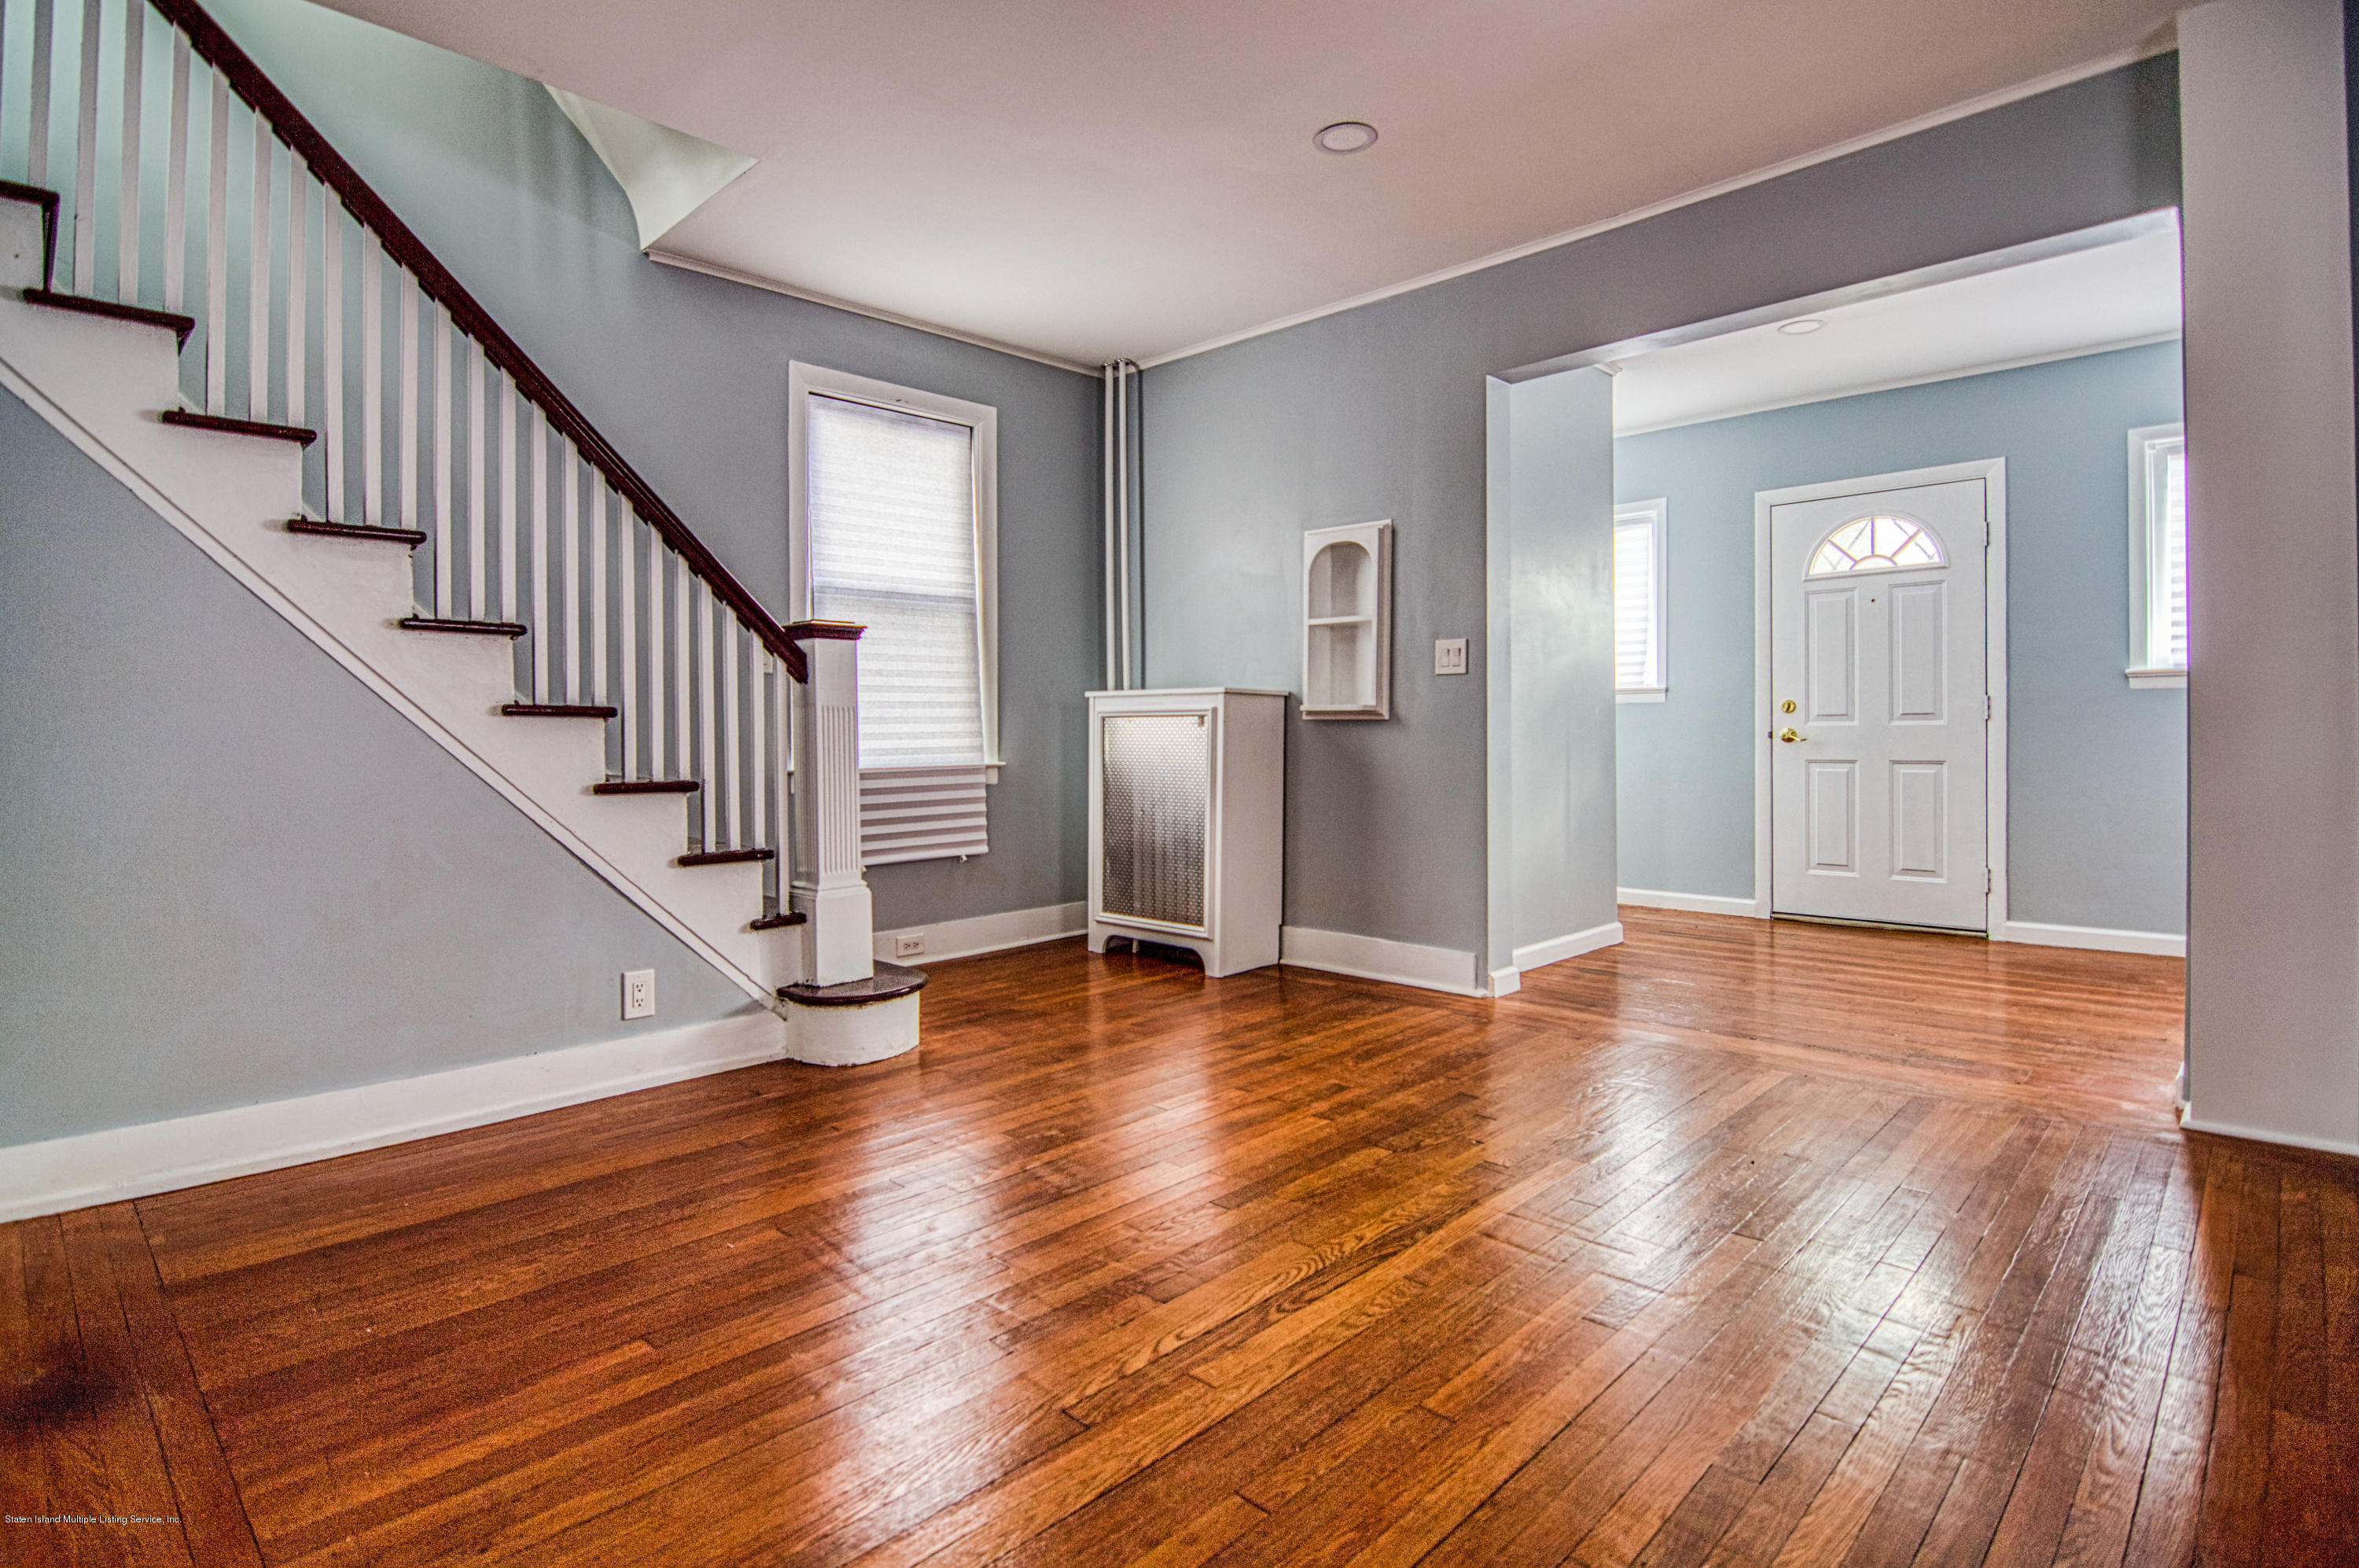 Single Family - Detached 54 Quinlan Avenue  Staten Island, NY 10314, MLS-1135997-7